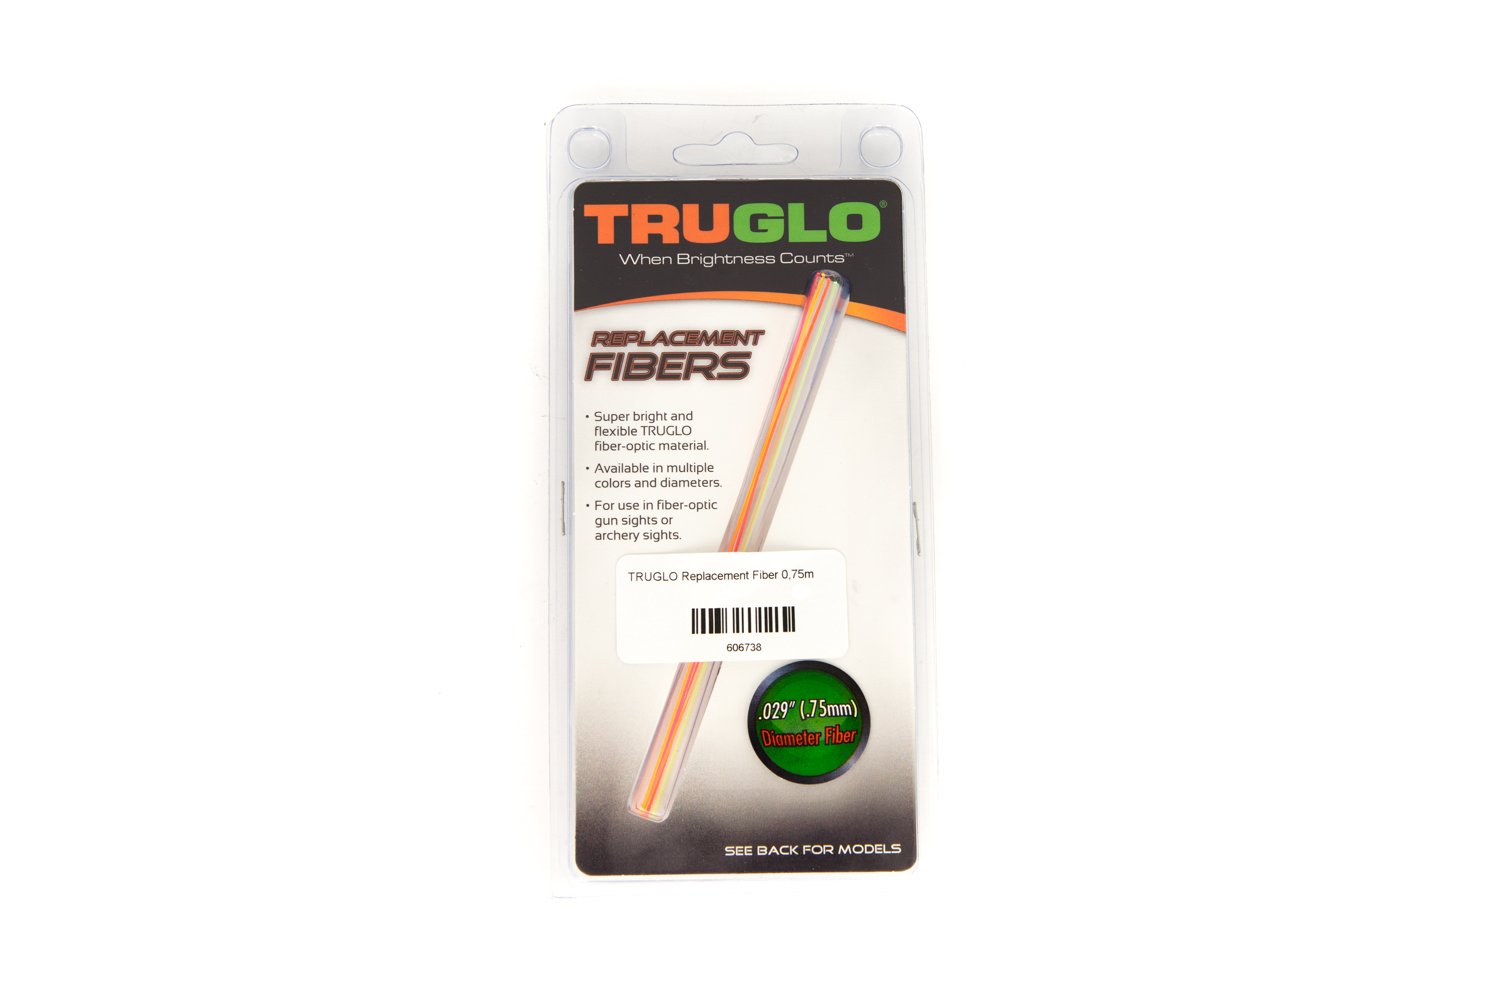 TRUGLO Replacement Fiber 0,75